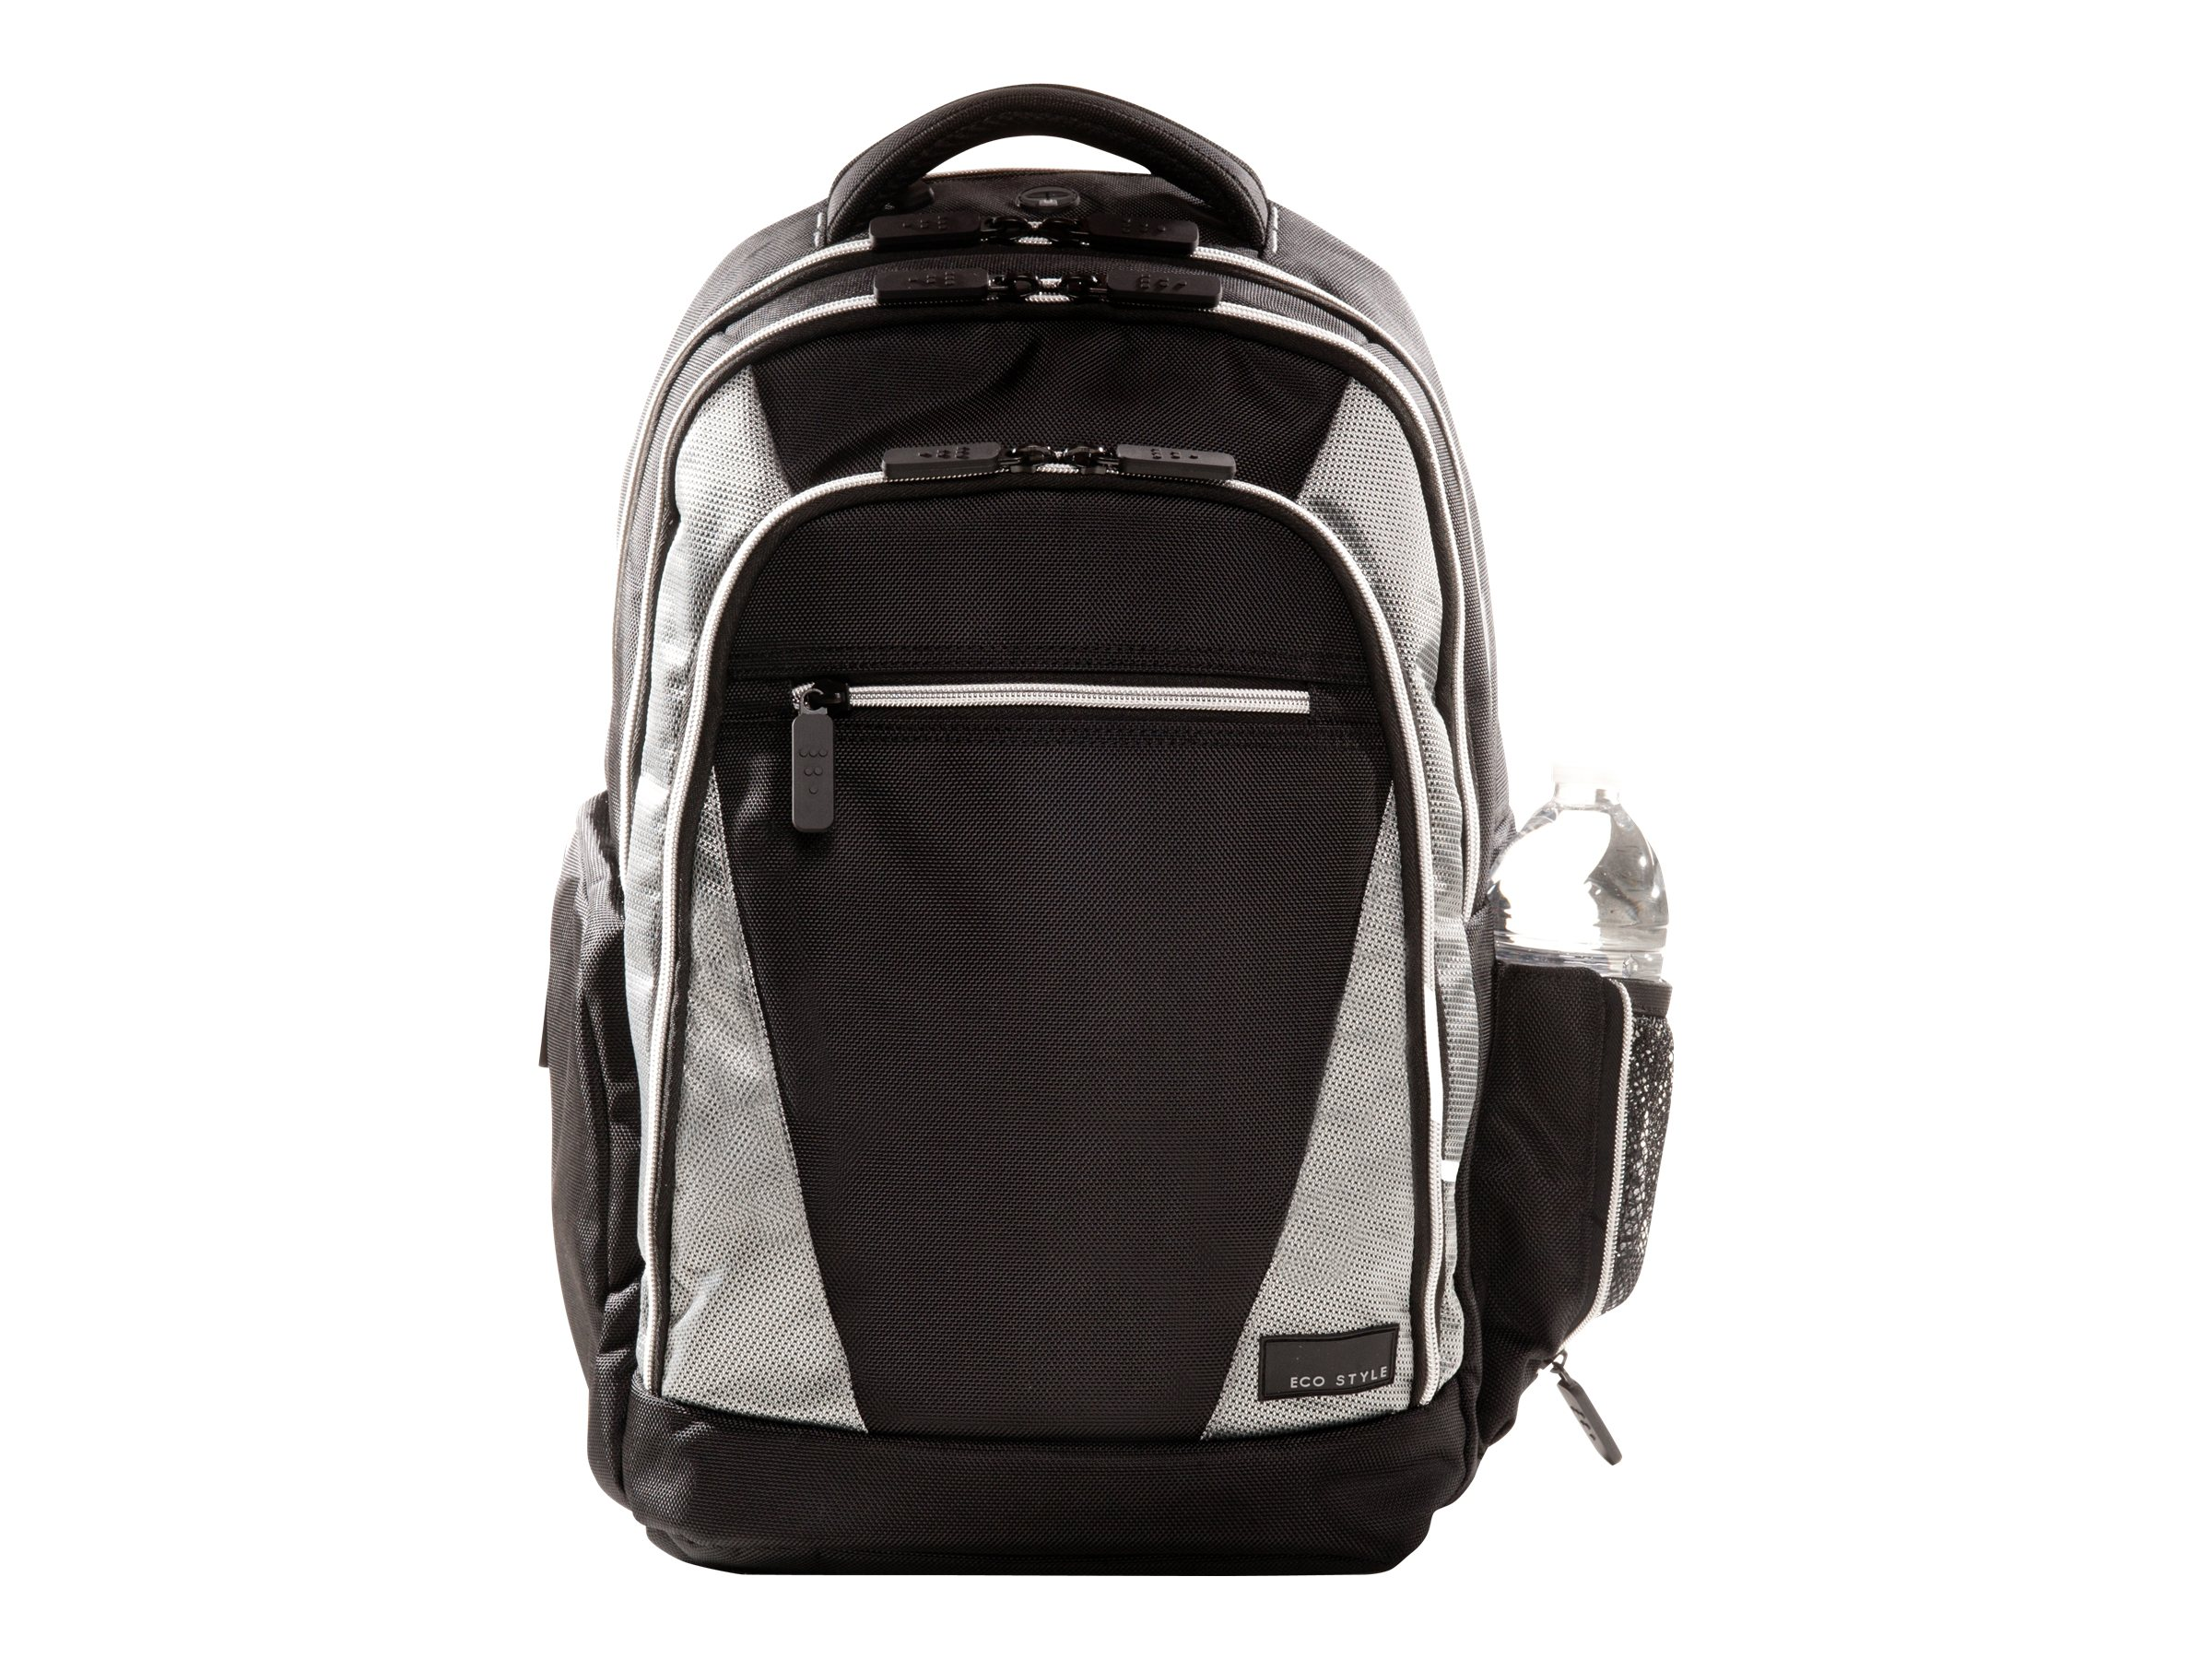 Eco Style Sports Voyage Backpack, Fits 17.3 Notebook, Black Silver